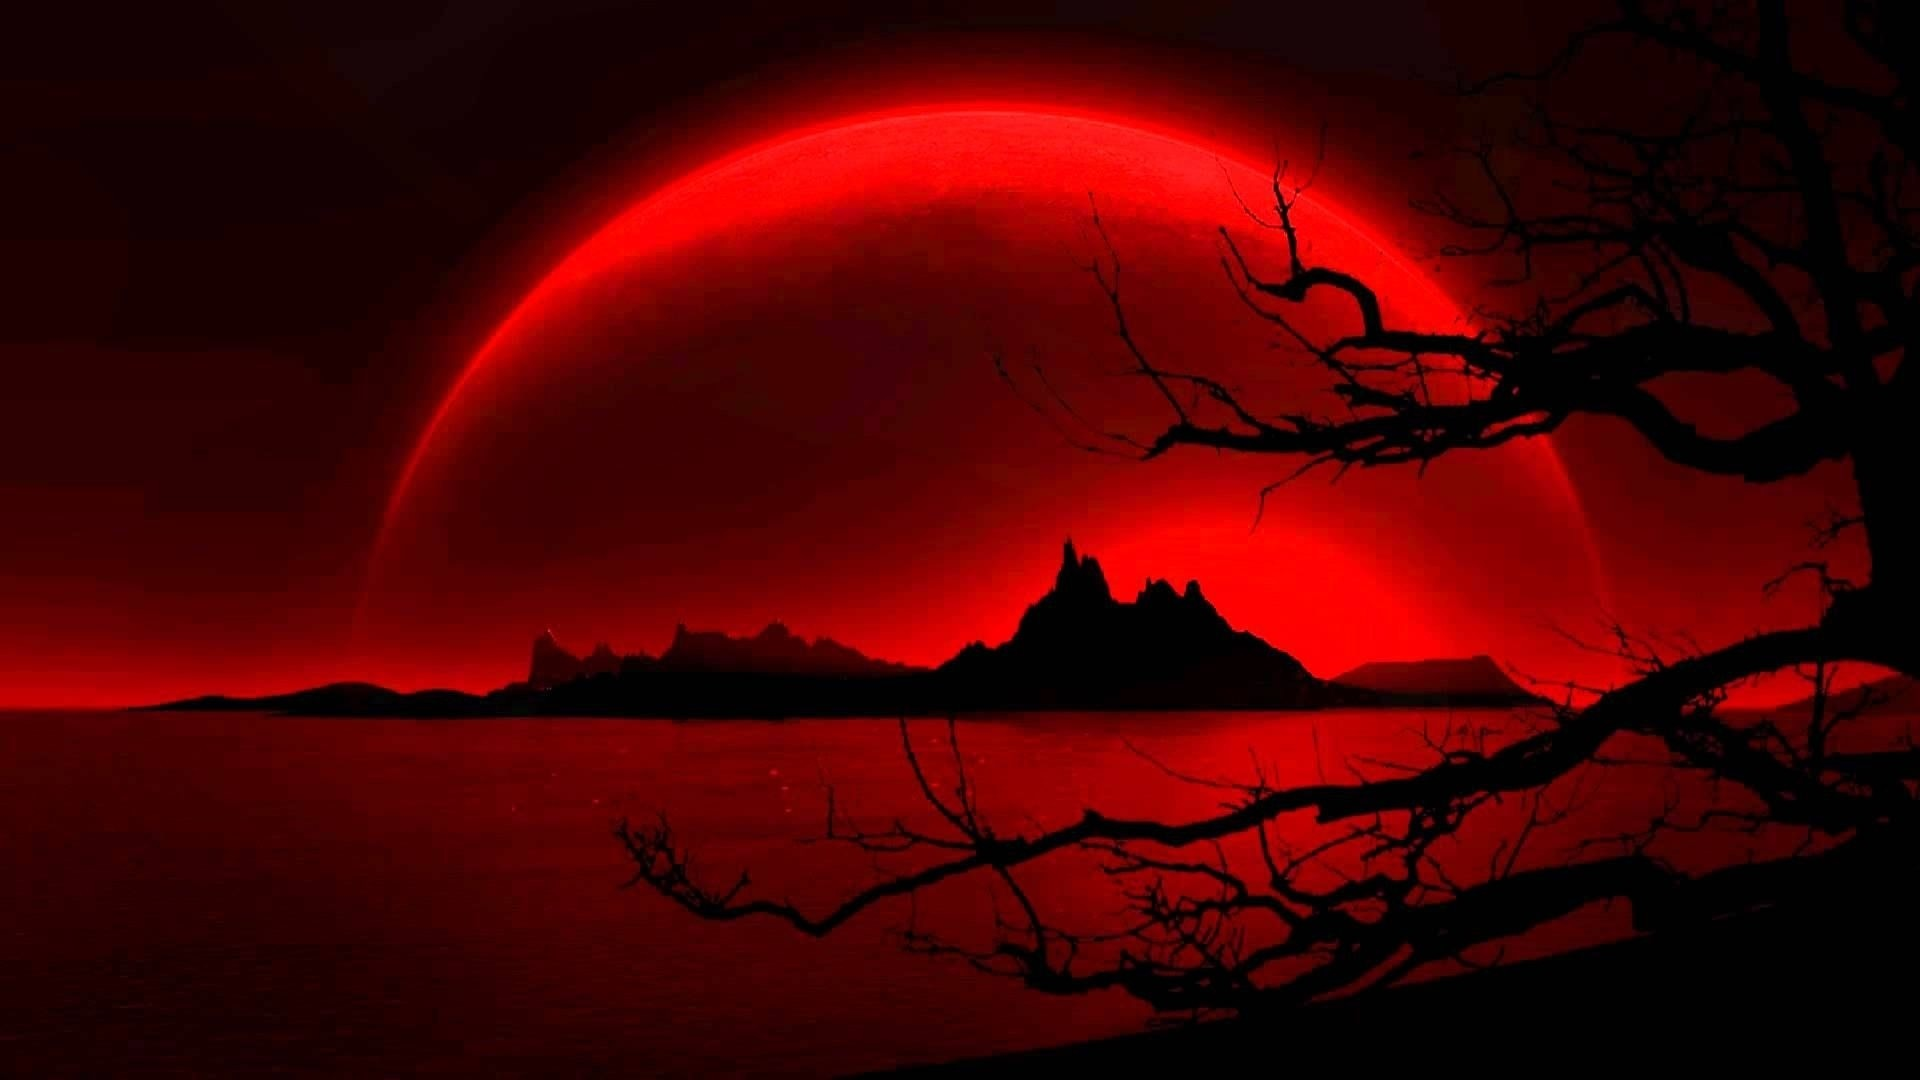 Red Dragon Wallpapers 73 Pictures